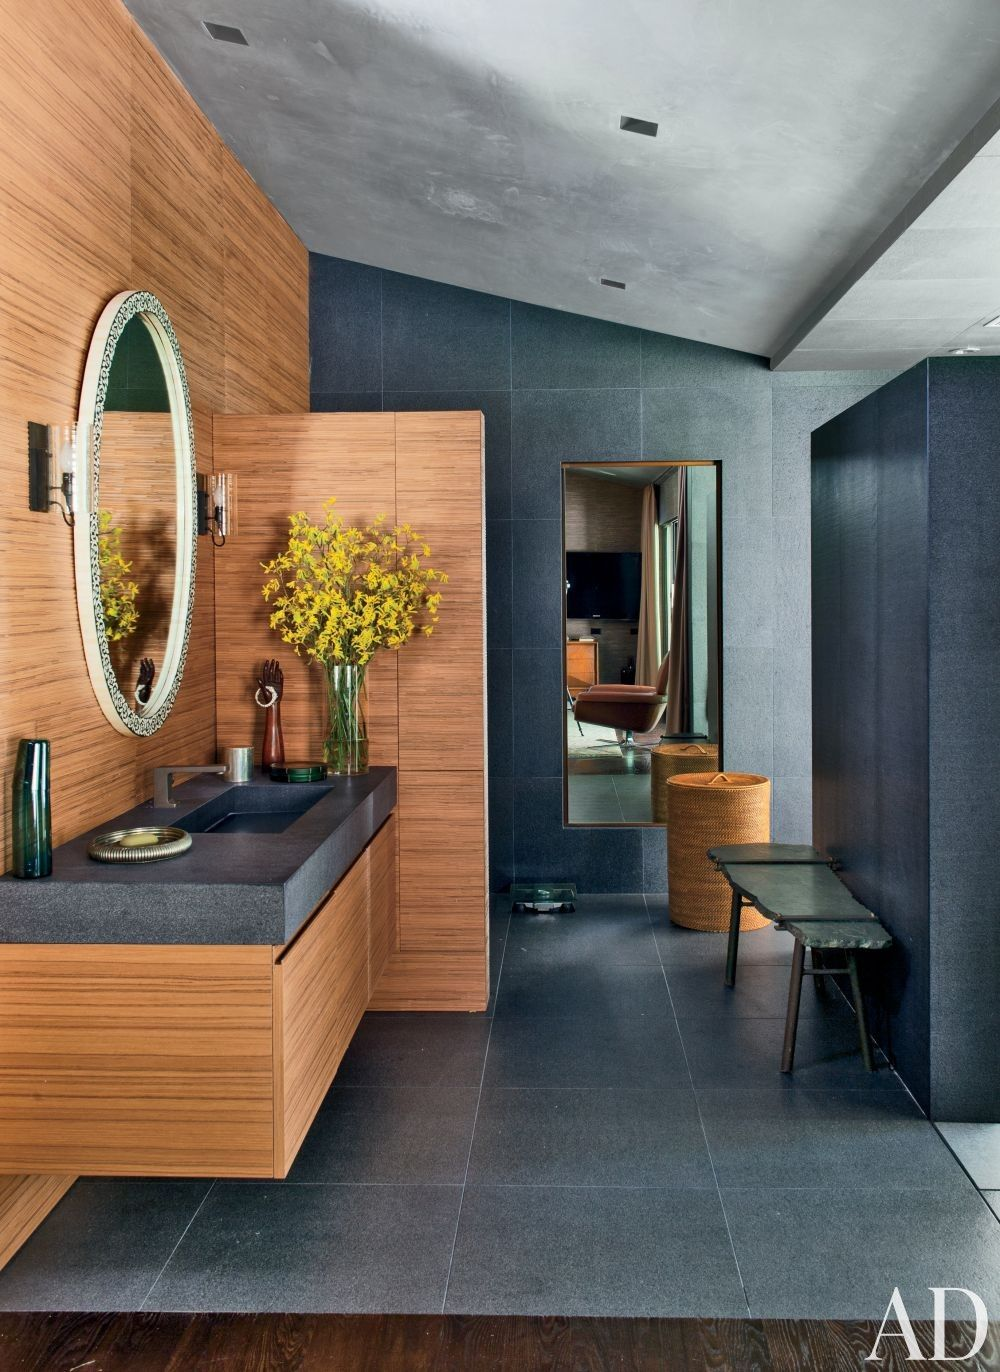 Contemporary Bathroom By Desiderata Design In Los Angeles, California